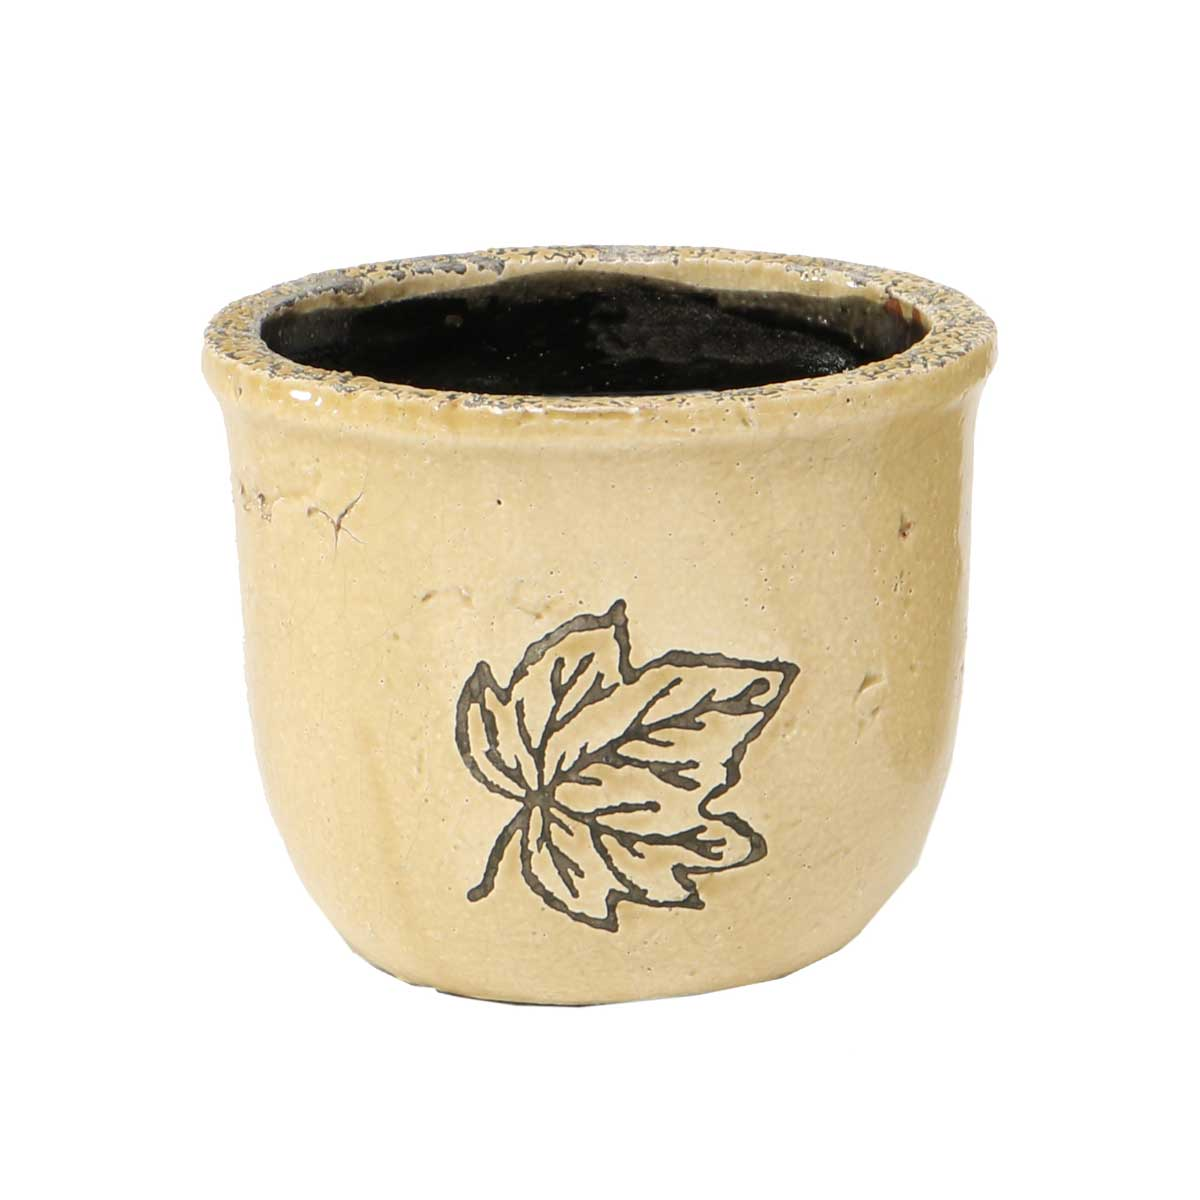 "Leaf Cache Pot 4.5""x5"" A2070 TN v22"